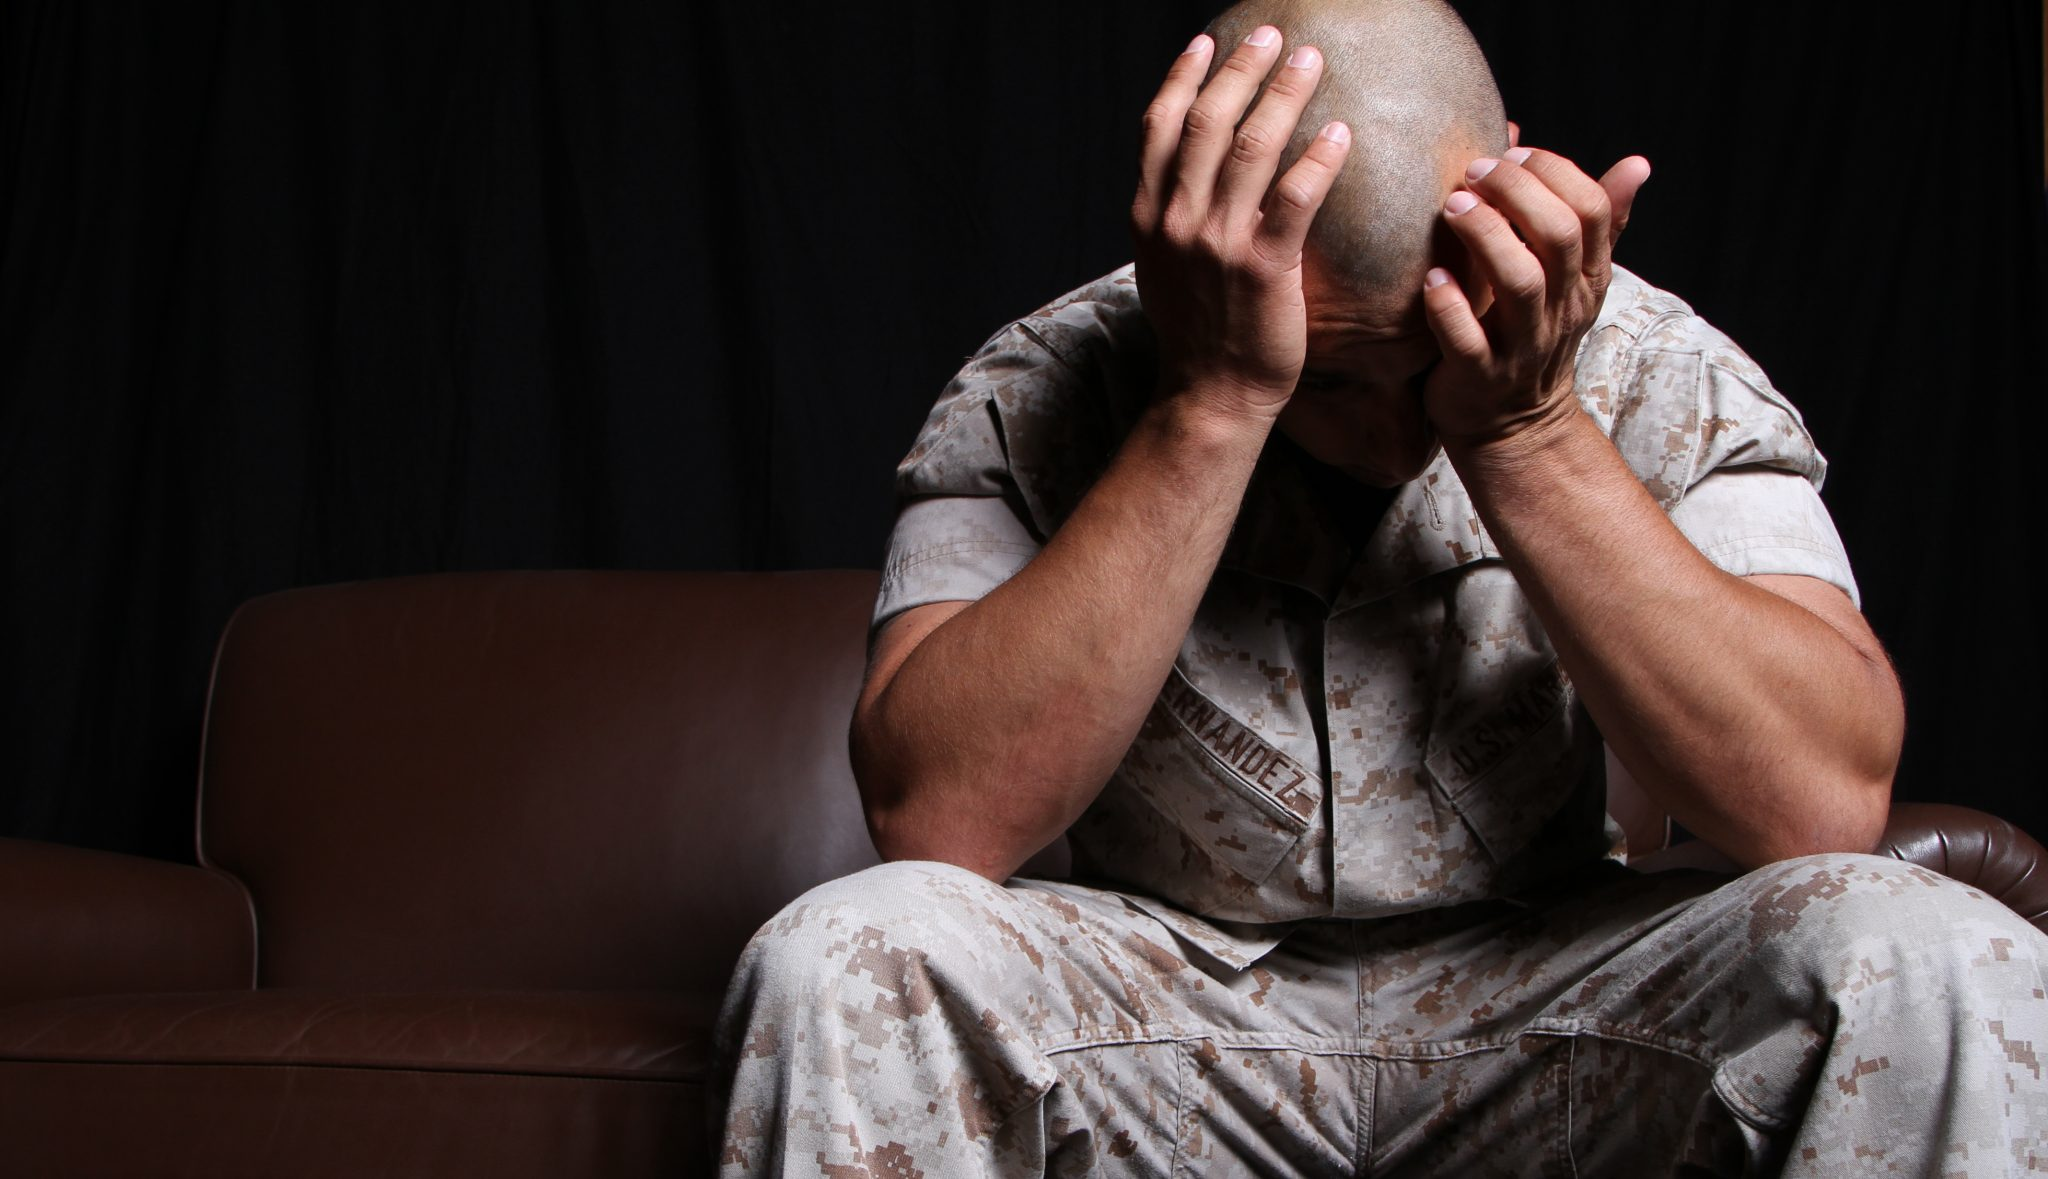 soldier suffering from post traumatic stress disorder